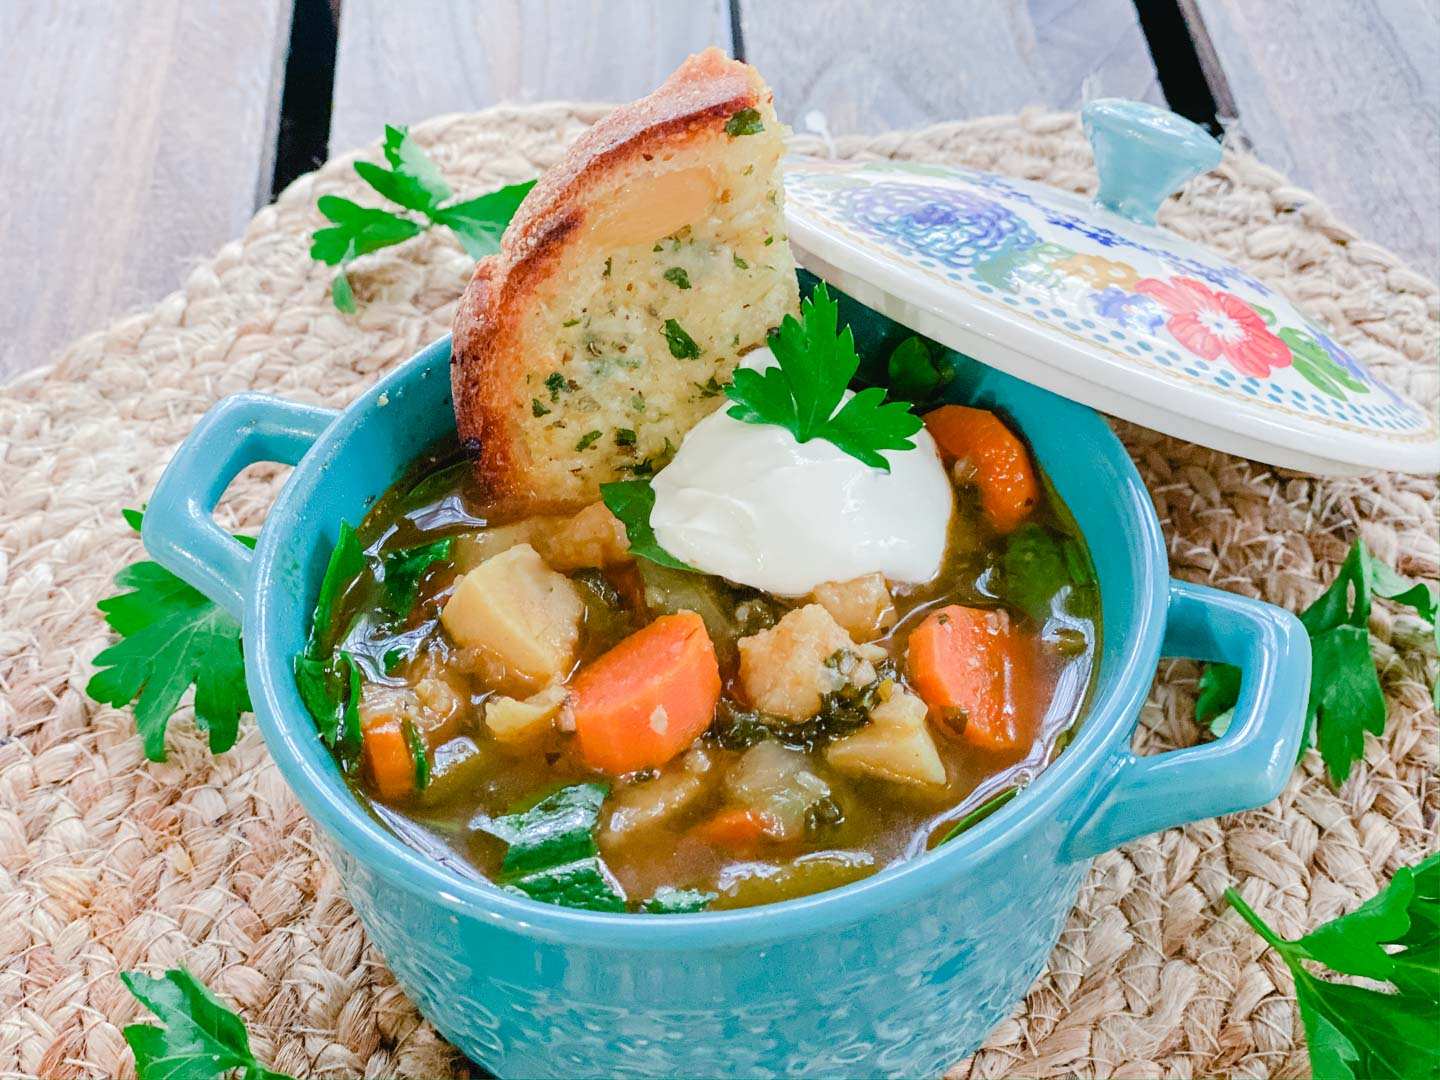 Vegetable soup with carrots, potatoes, green beans, spinach with a dollop of sour cream in a blue bowl.